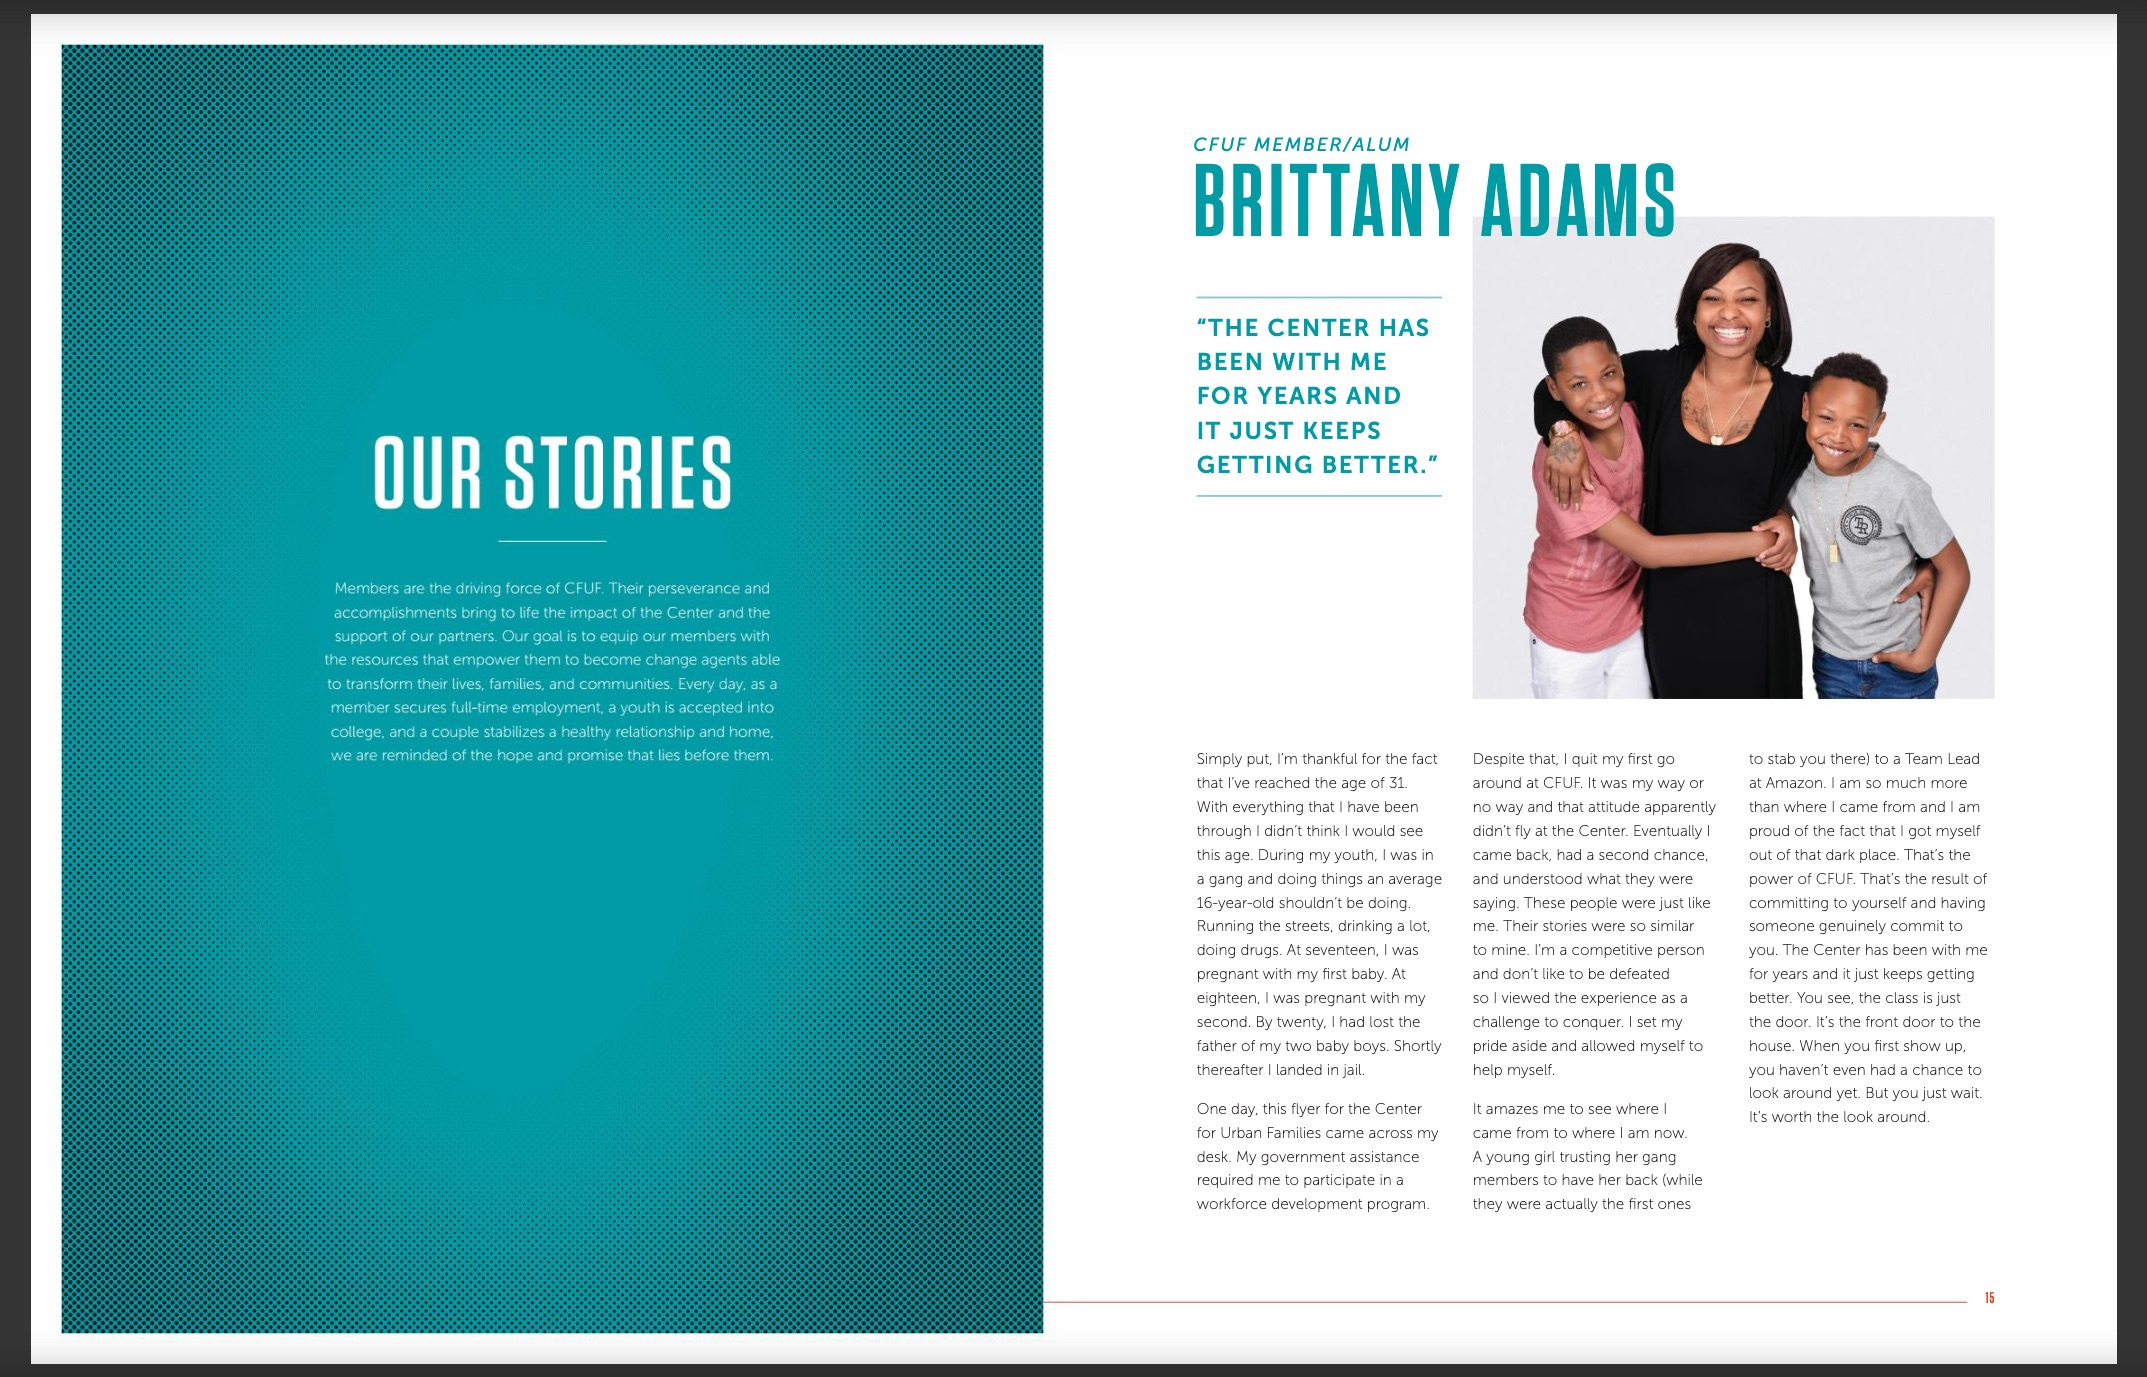 CFUF nonprofit annual report - our stories